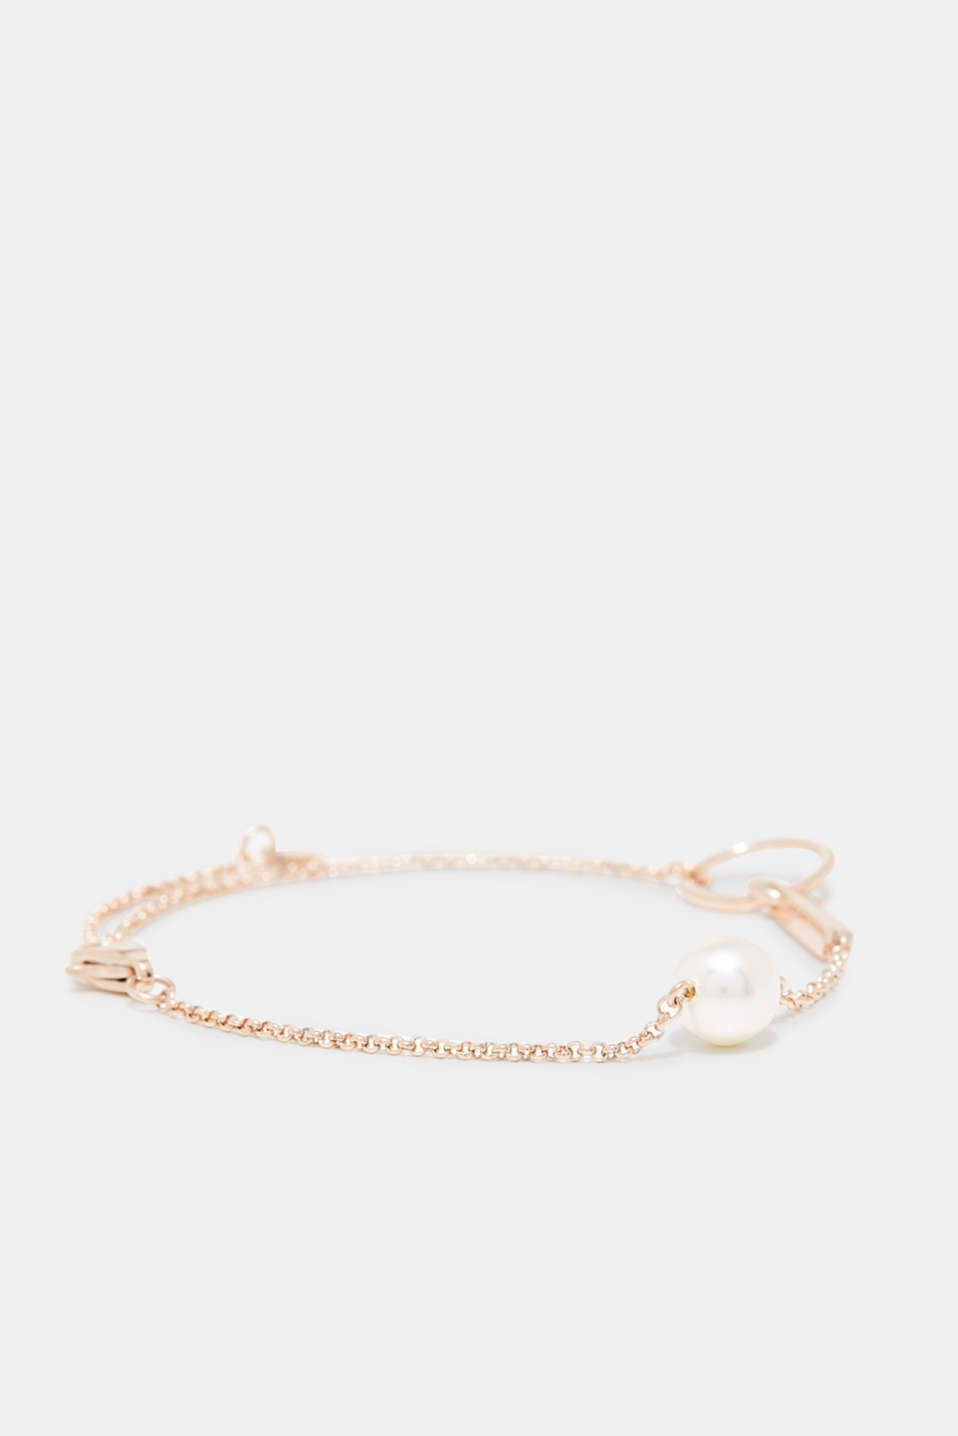 Bracelet with a white pearl, stainless steel